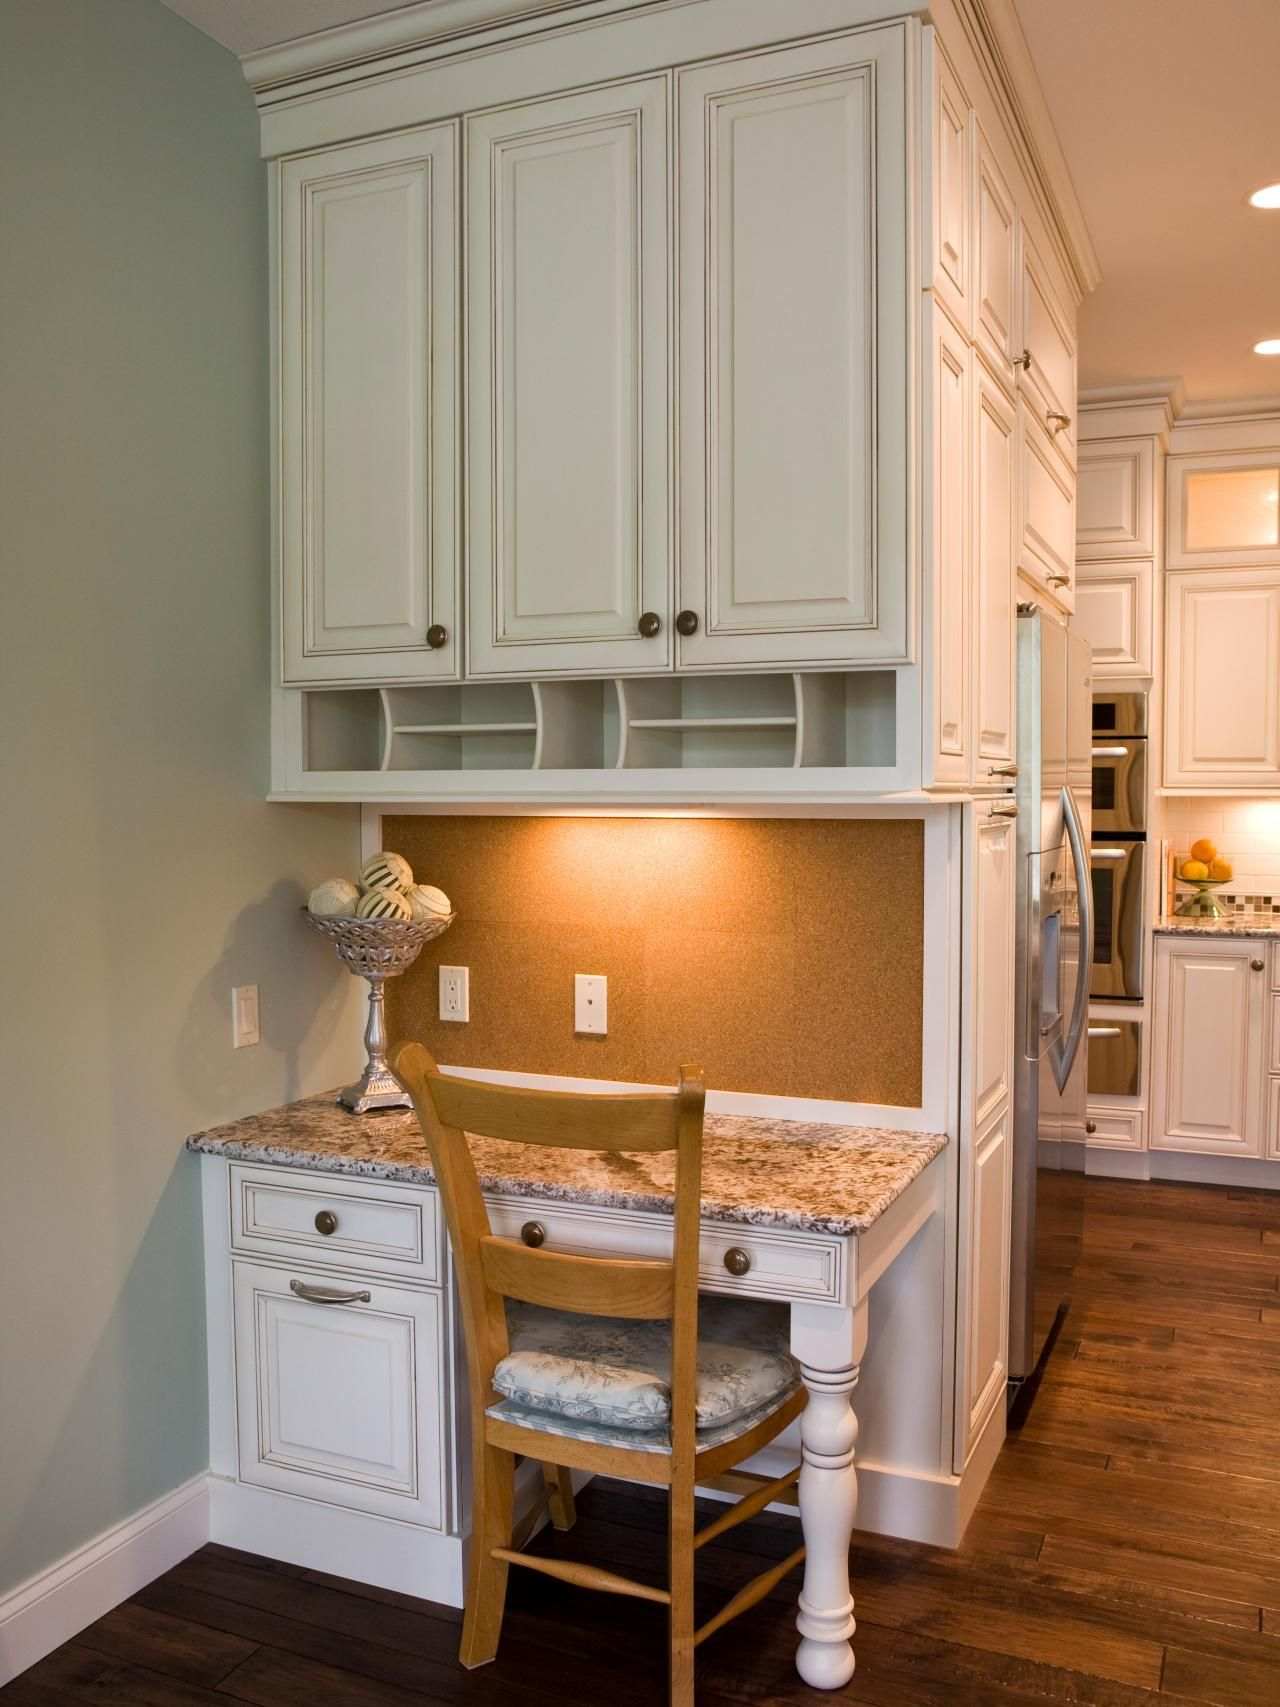 This customdesigned kitchen desk area features plenty of